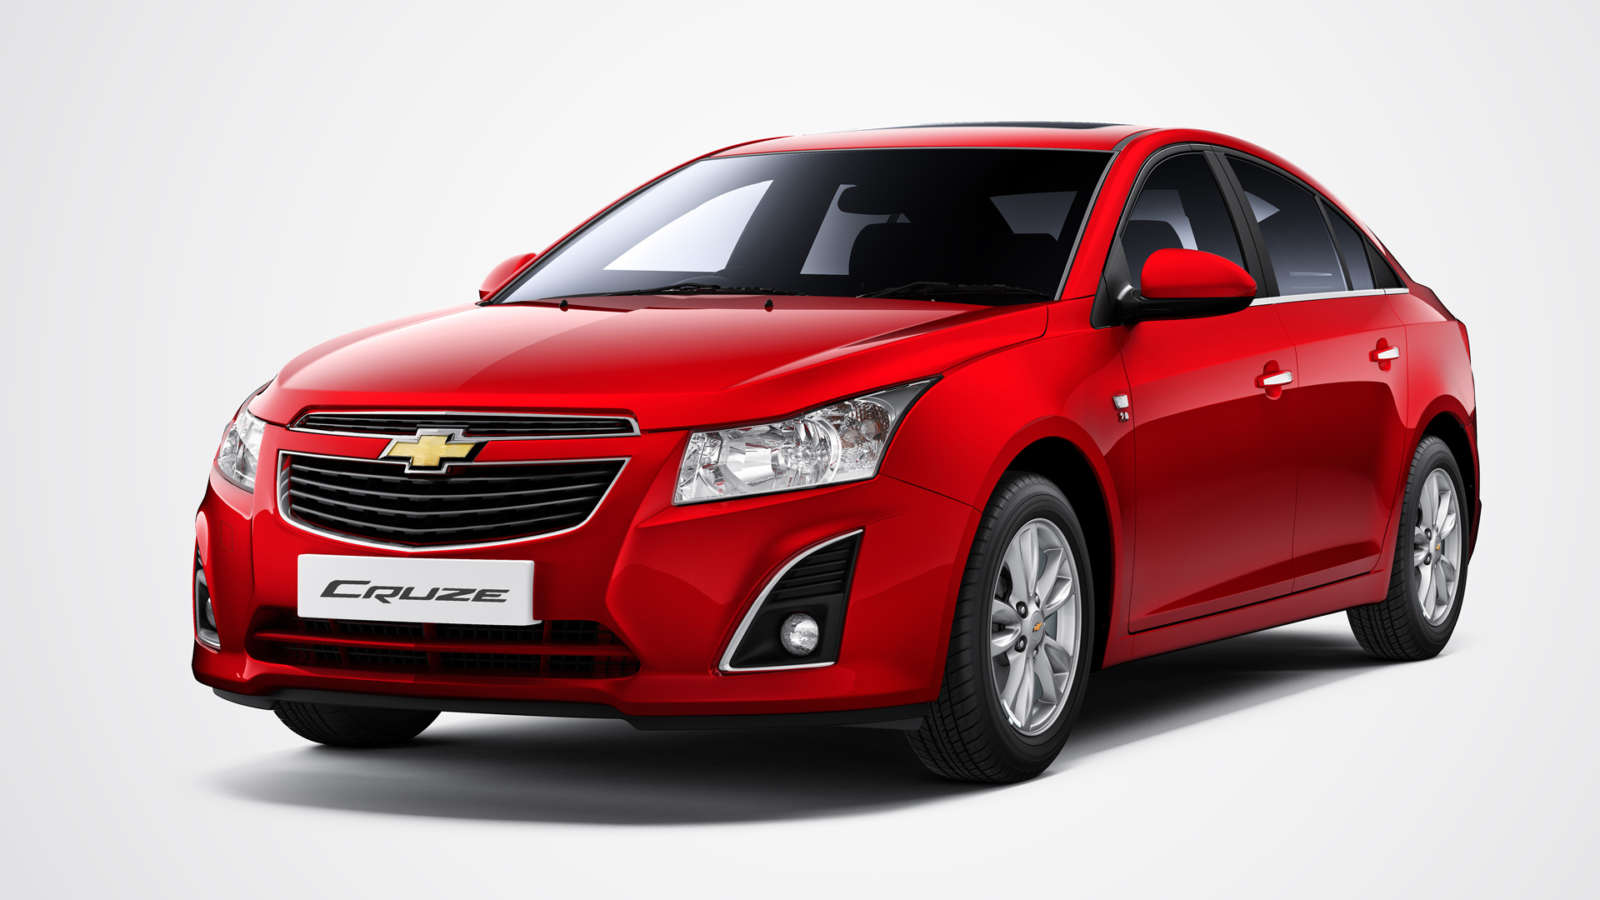 Chevrolet cruze confiscated cars in your city